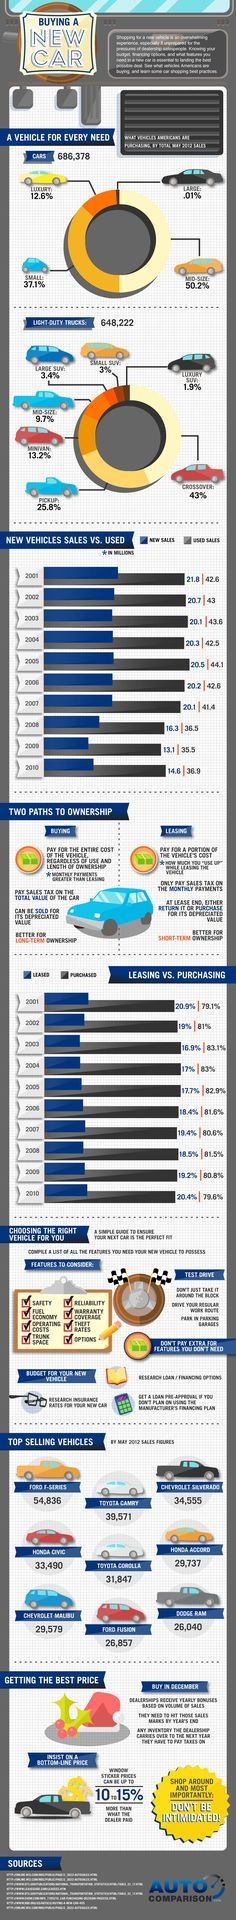 Have you seen this? via @visually General information about the US automotive market and advice for car buyers